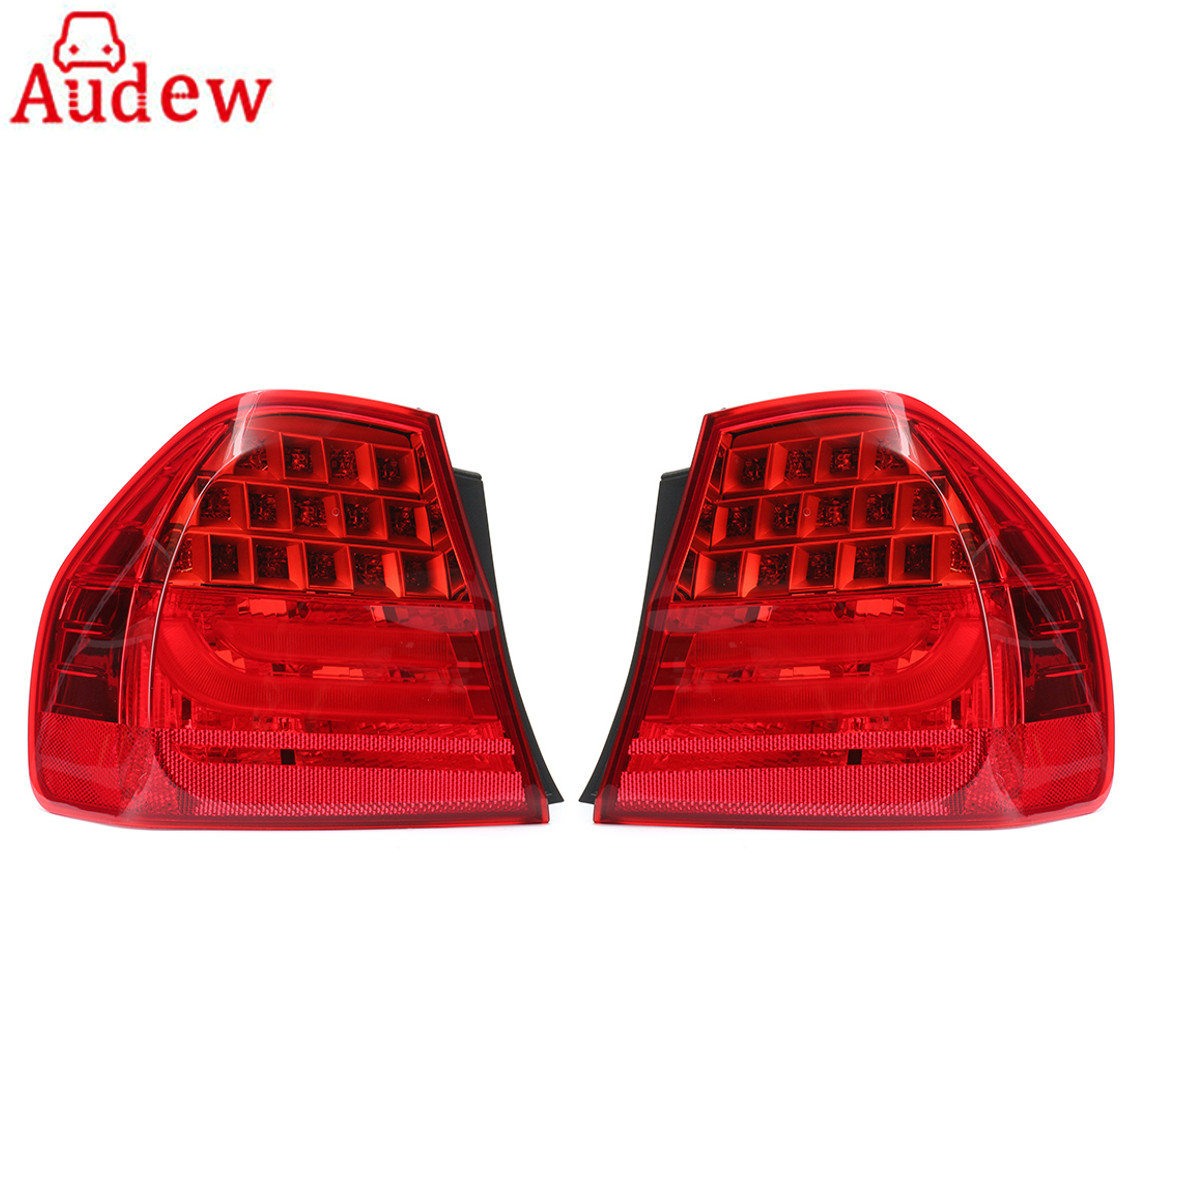 1Pcs Car Rear TAIL LAMP LIGHT LED Light  LEFT / RIGHT SIDE FOR BMW 3 SERIES E90 2008-2011 dhl ems free shipping for bmw x5 rear left right air suspension spring bag 37126790078 cars spring bag